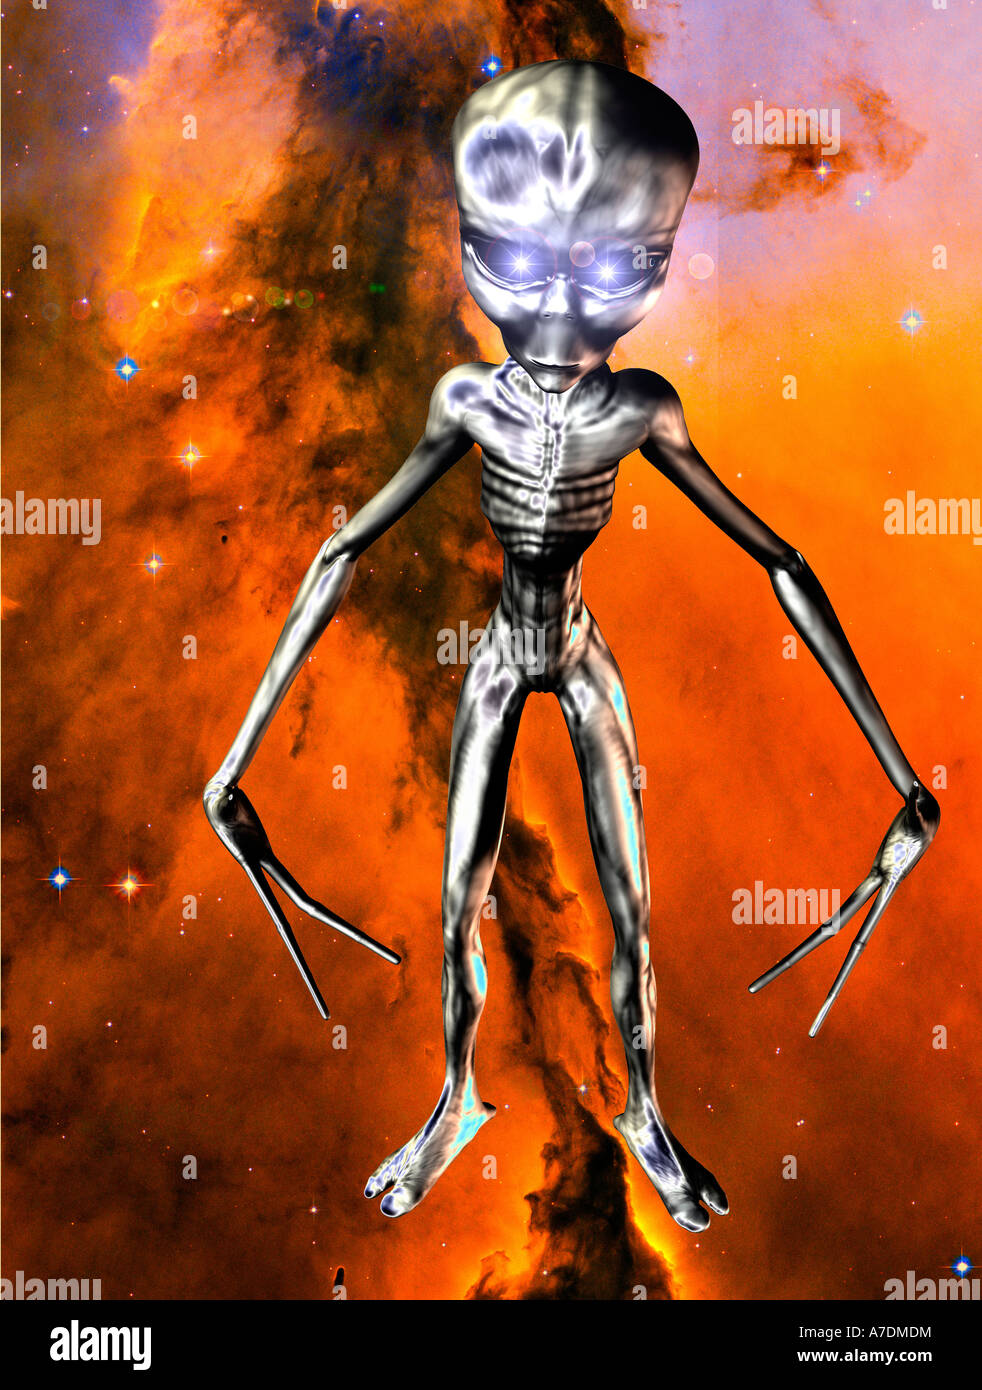 futuristic 3D computer generated bionic male alien head on background of digital NASA view of sky - Stock Image